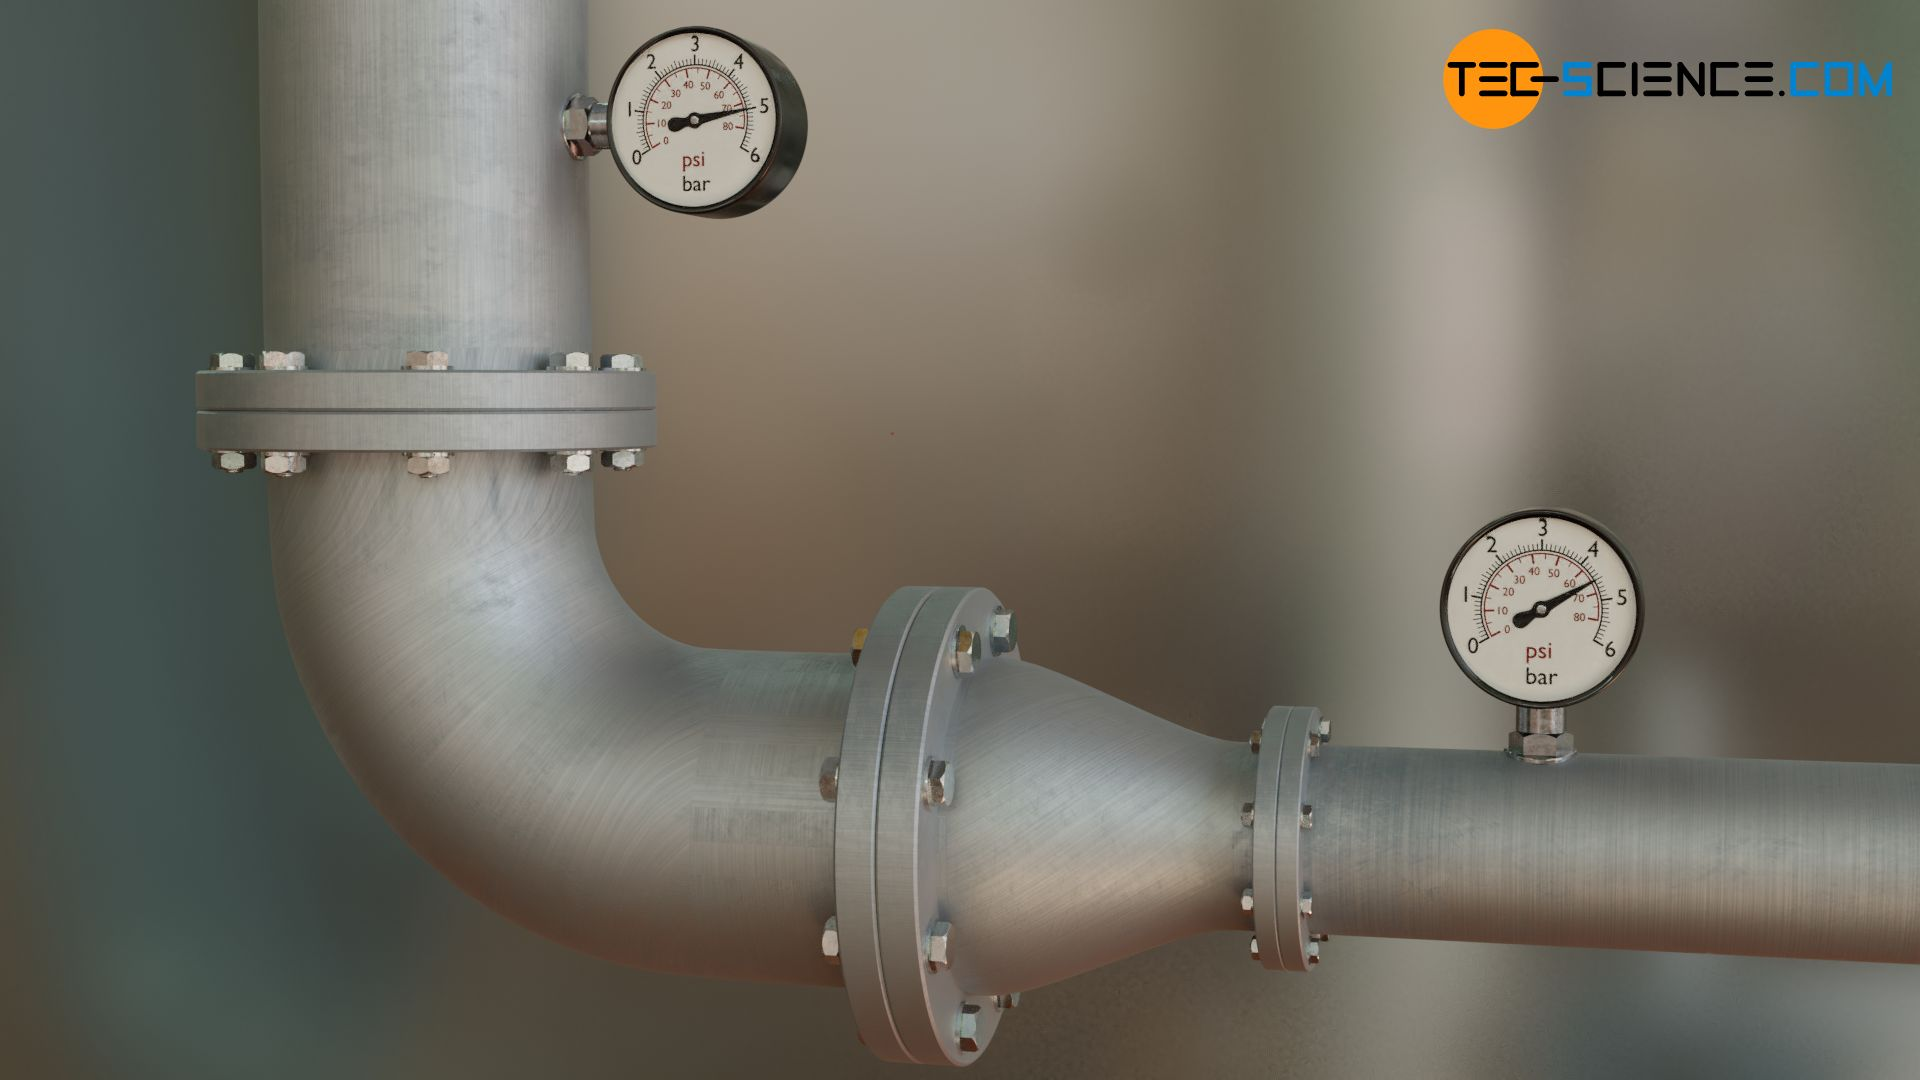 Pressure measurement on a pipe system